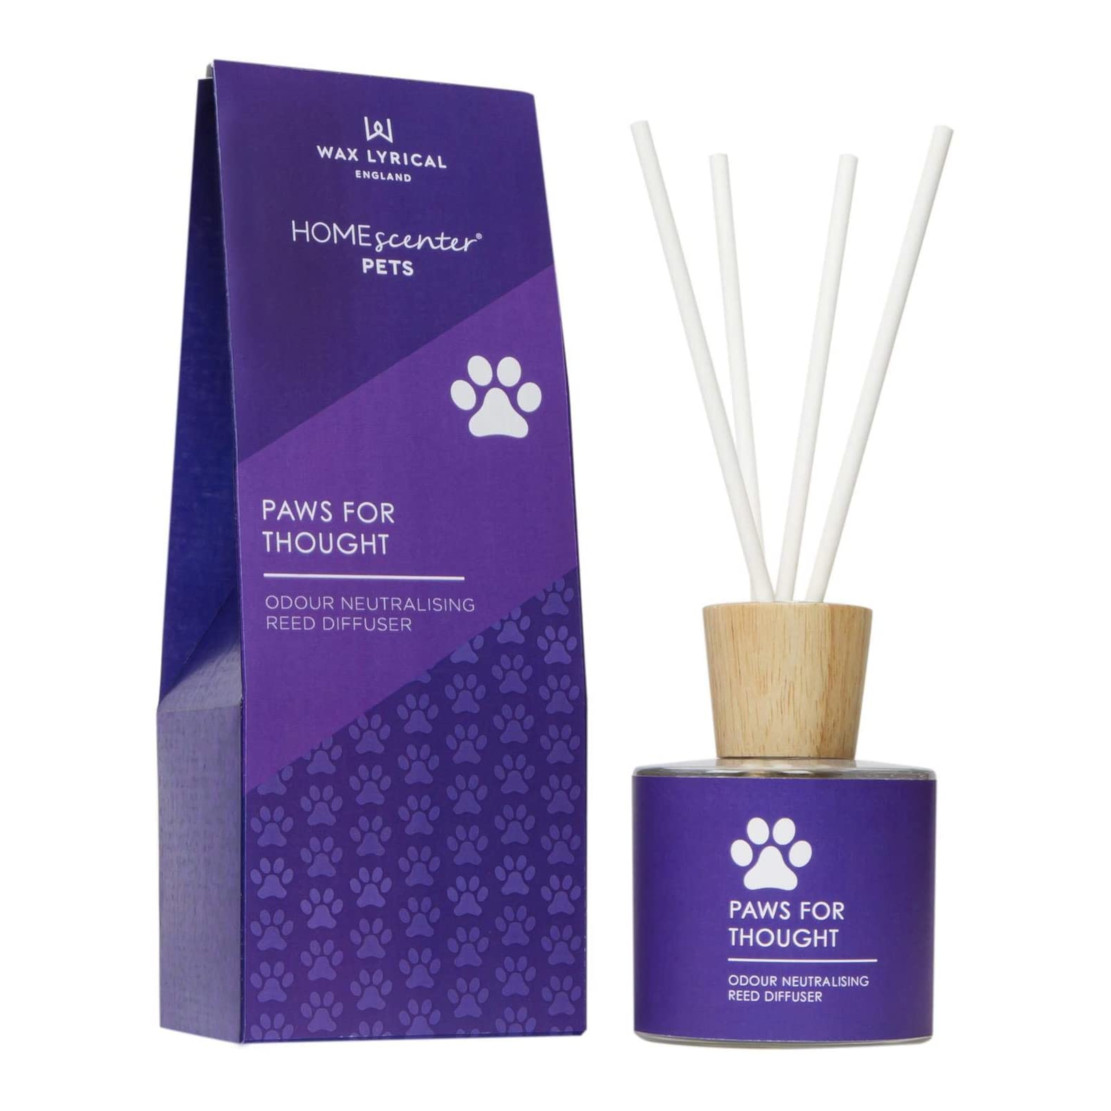 Wax Lyrical Paws for Thought 180ml Reed Diffuser